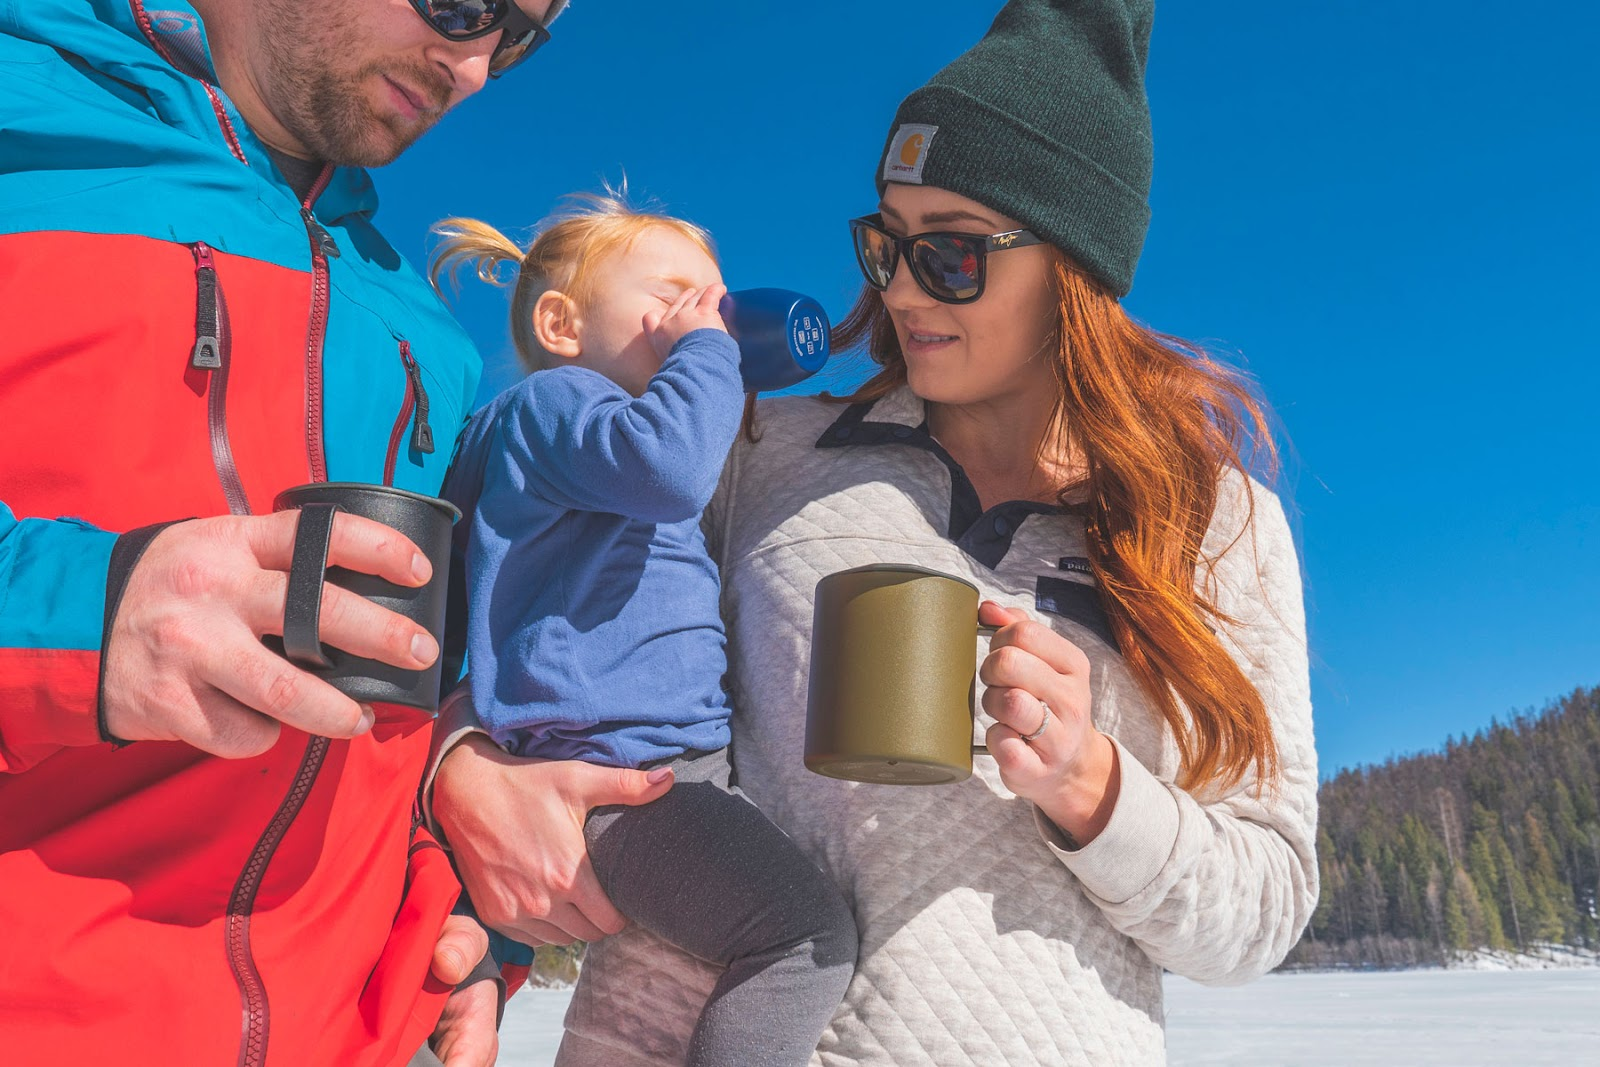 GSI Outdoors Camp cookware and Insulated Drinkware